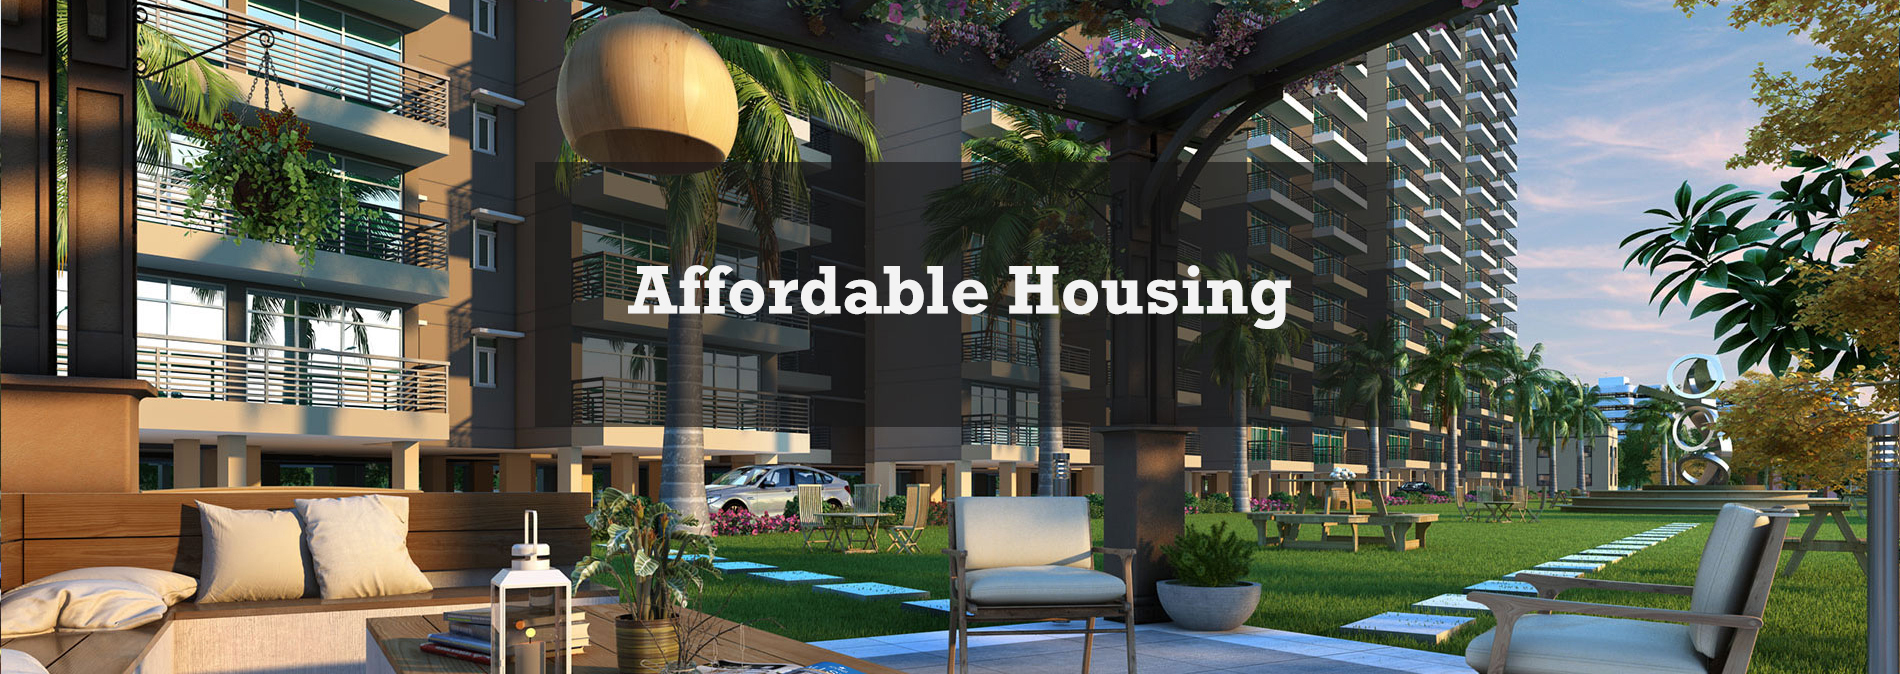 Haryana Govt. affordable housing scheme Gurgaon